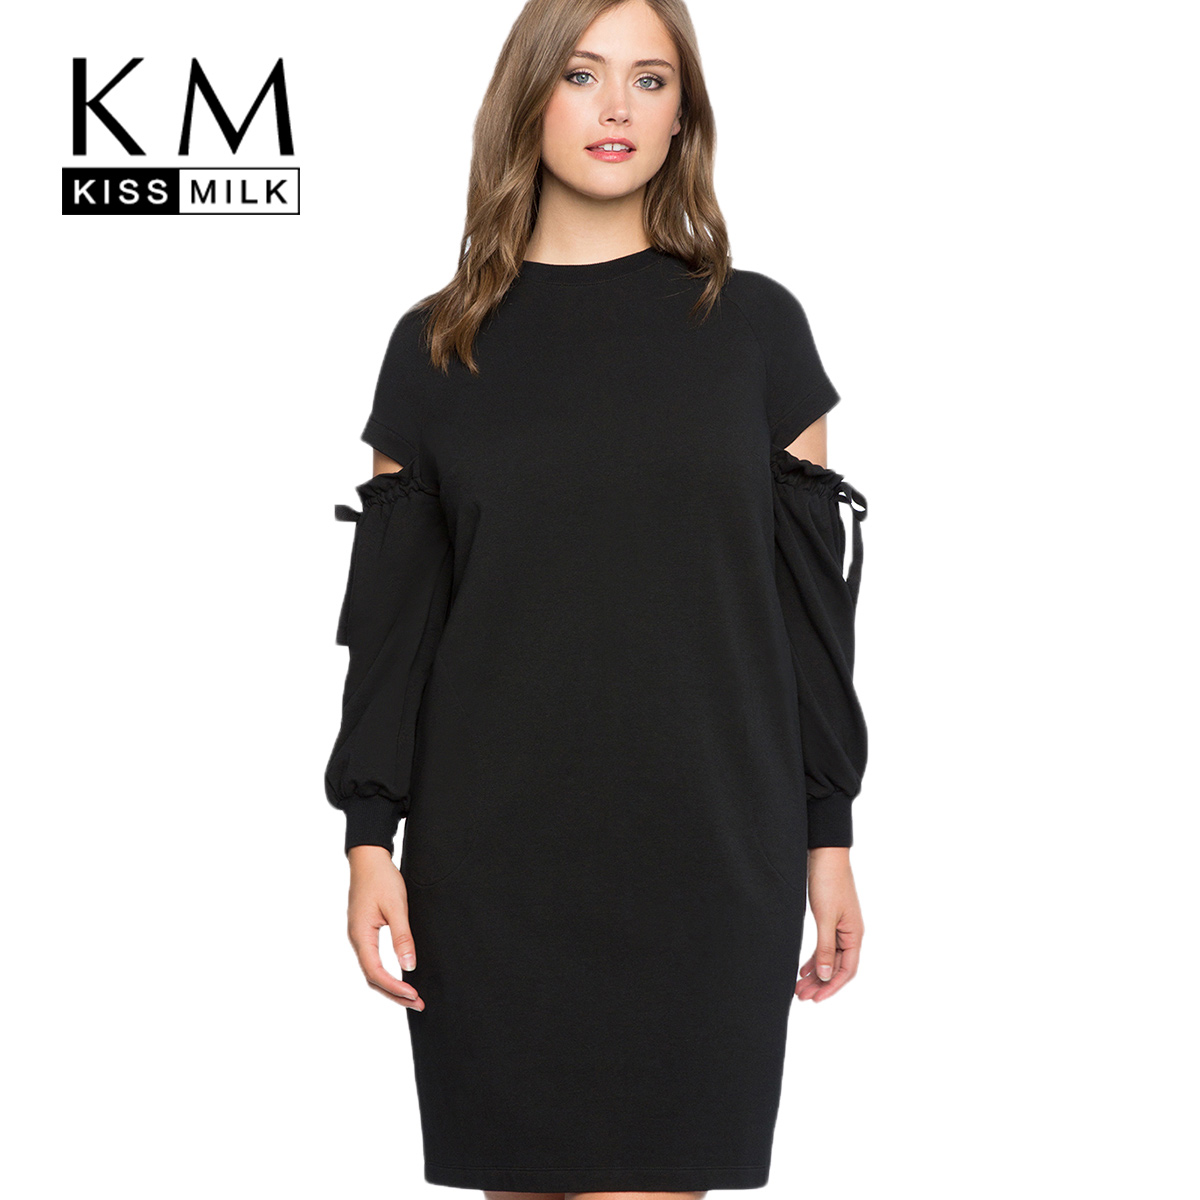 kissmilk 2018 Plus Size Solid Black Hollow Out Women Sweatshirt-dresses Lace Up Lantern Sleeve Female Big Size Casual Lady Dress casual fall style black long sleeve lace up sweatshirt